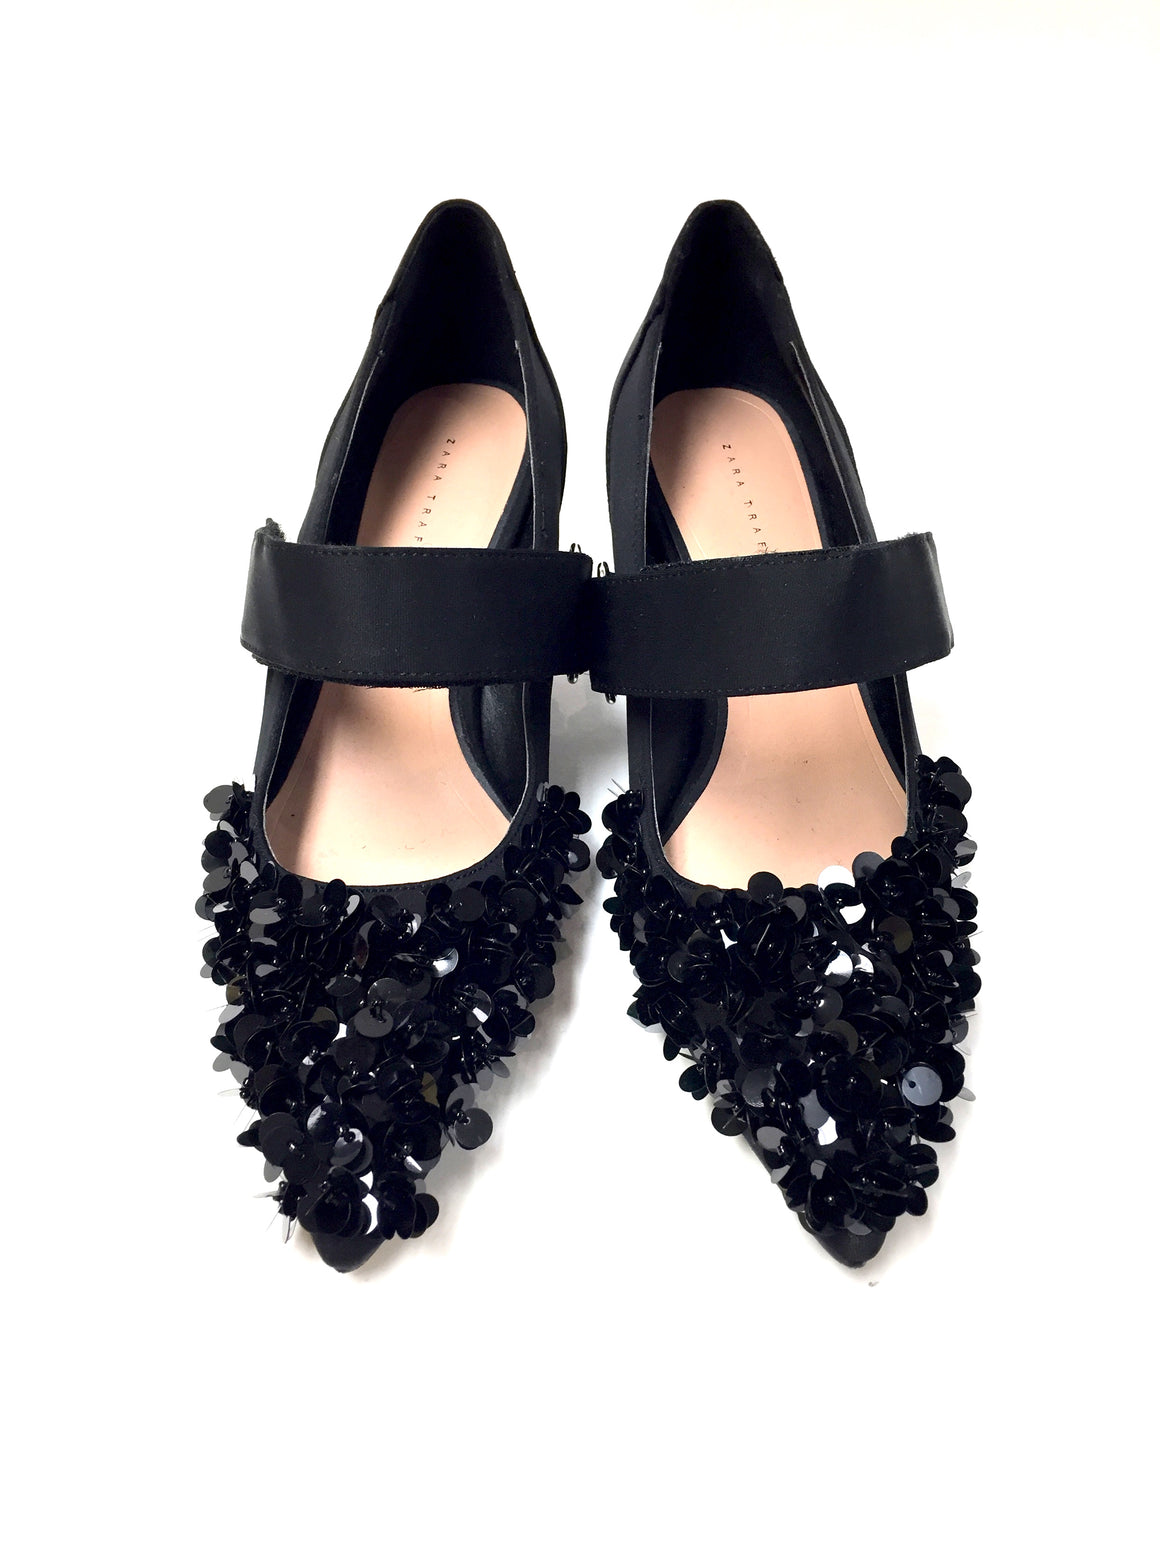 ZARA TRAFALUC Black Sequined Satin Canvas Kitten-Heel Mary Jane Pumps Shoes Size: EU 37 / 7